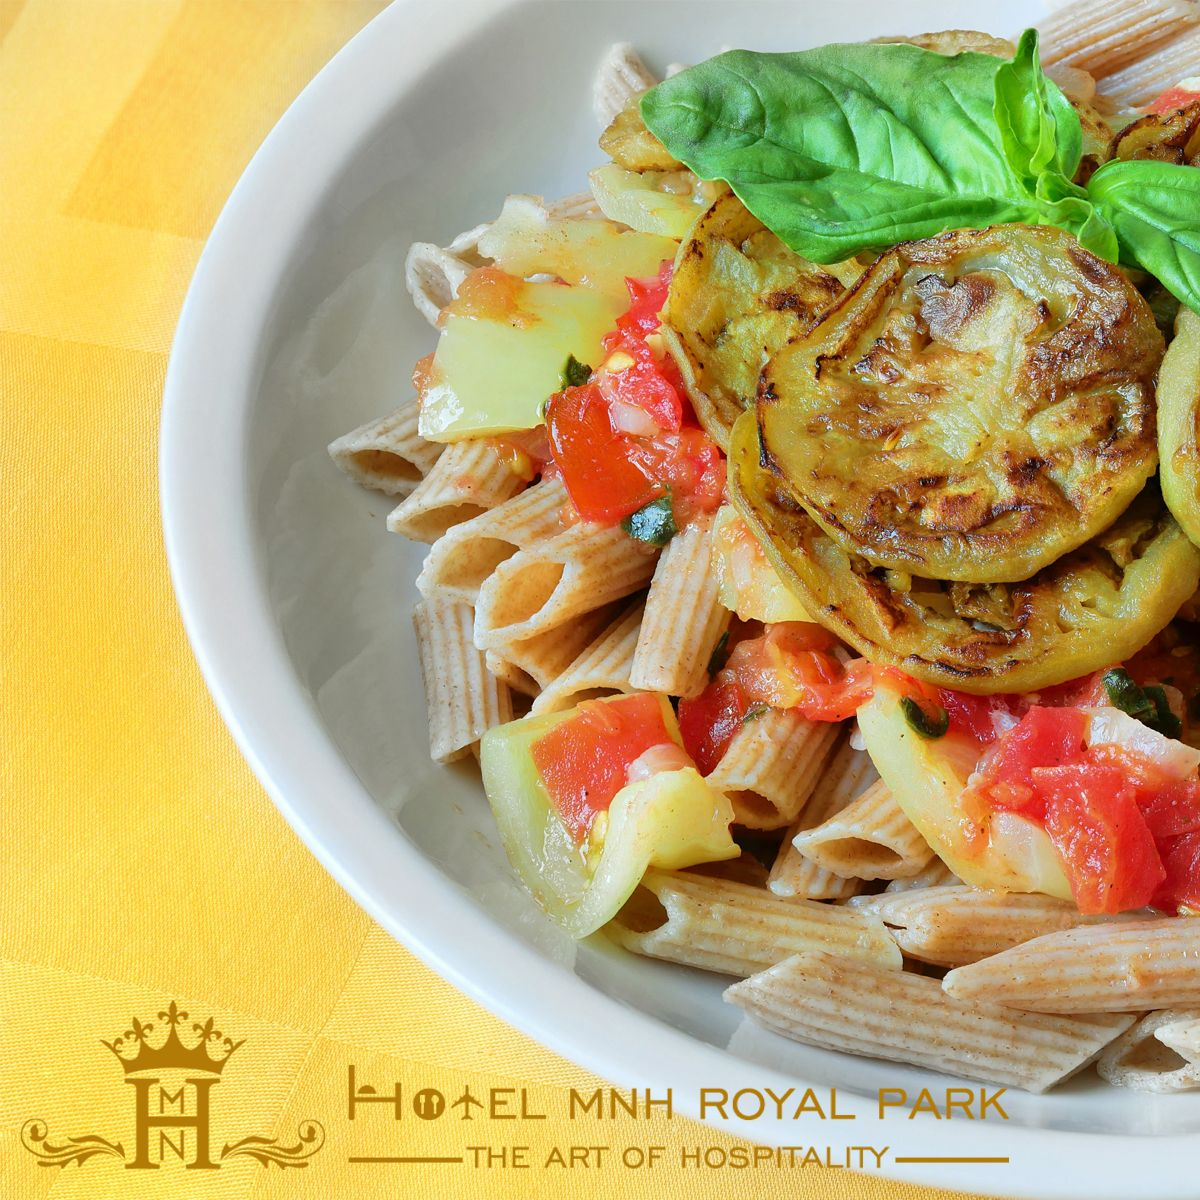 Pasta with Winter Squash and Tomatoes recipe makesthe dish